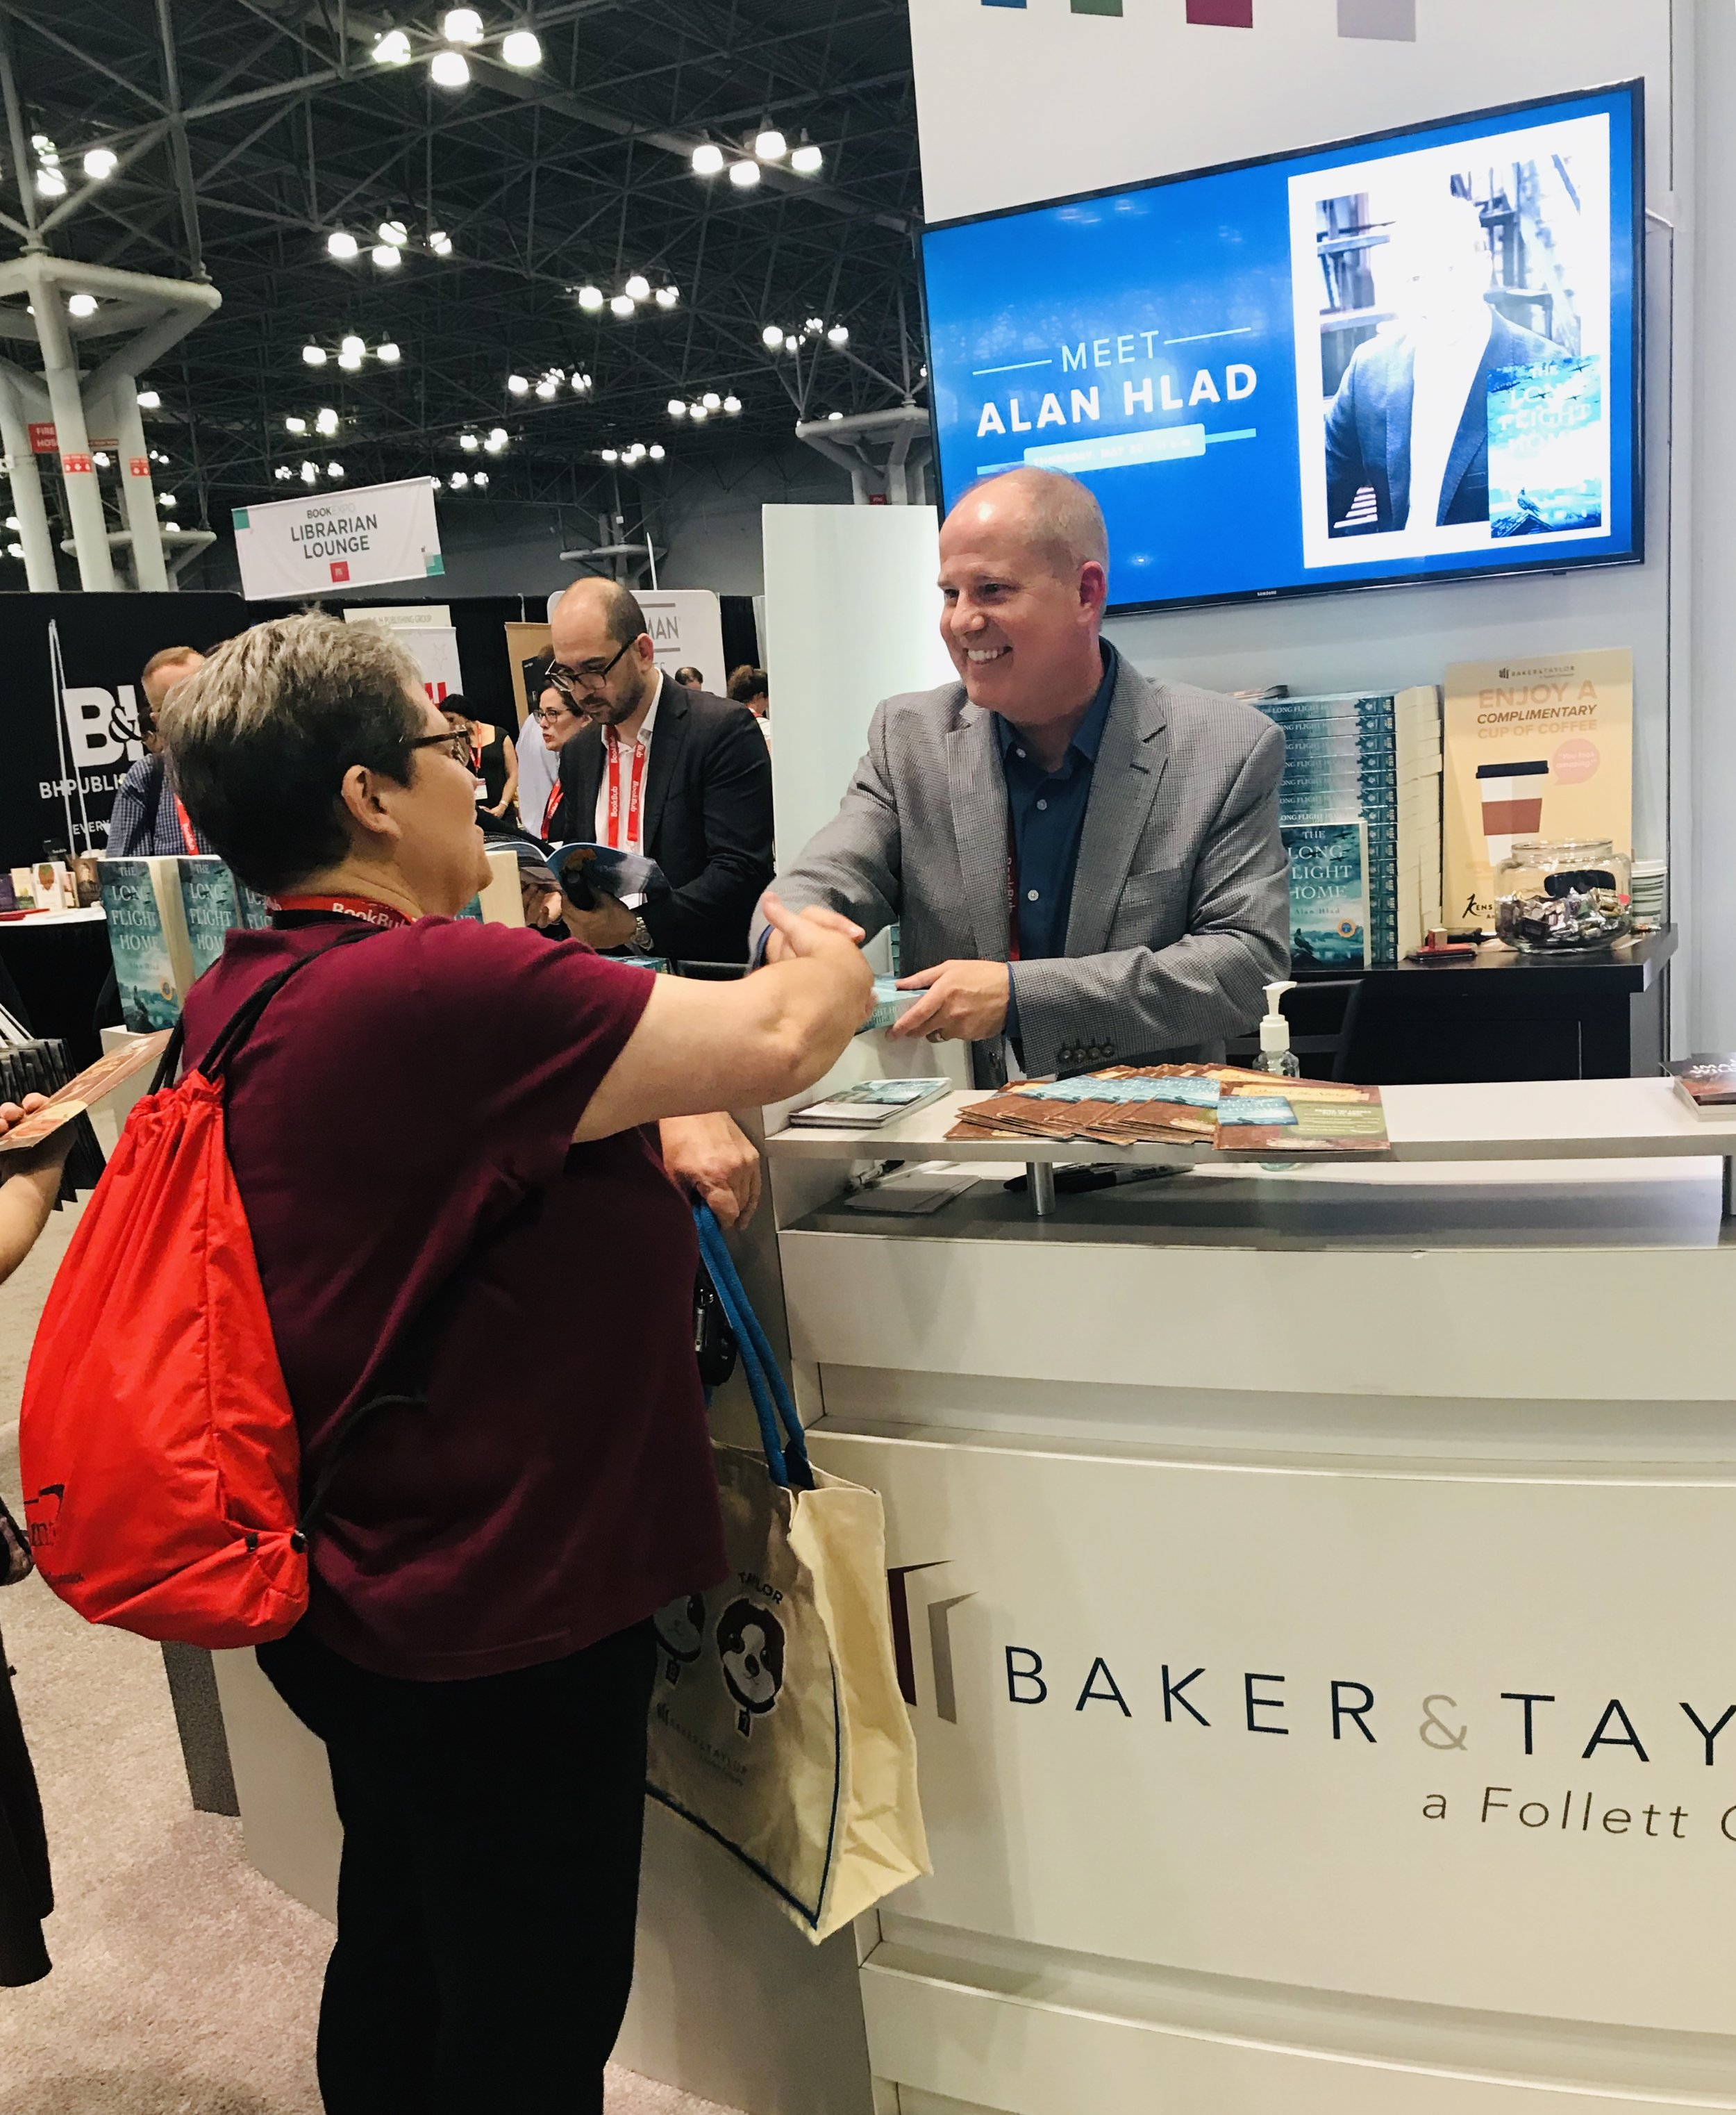 2019 BookExpo, NYC - Baker & Taylor book signing event